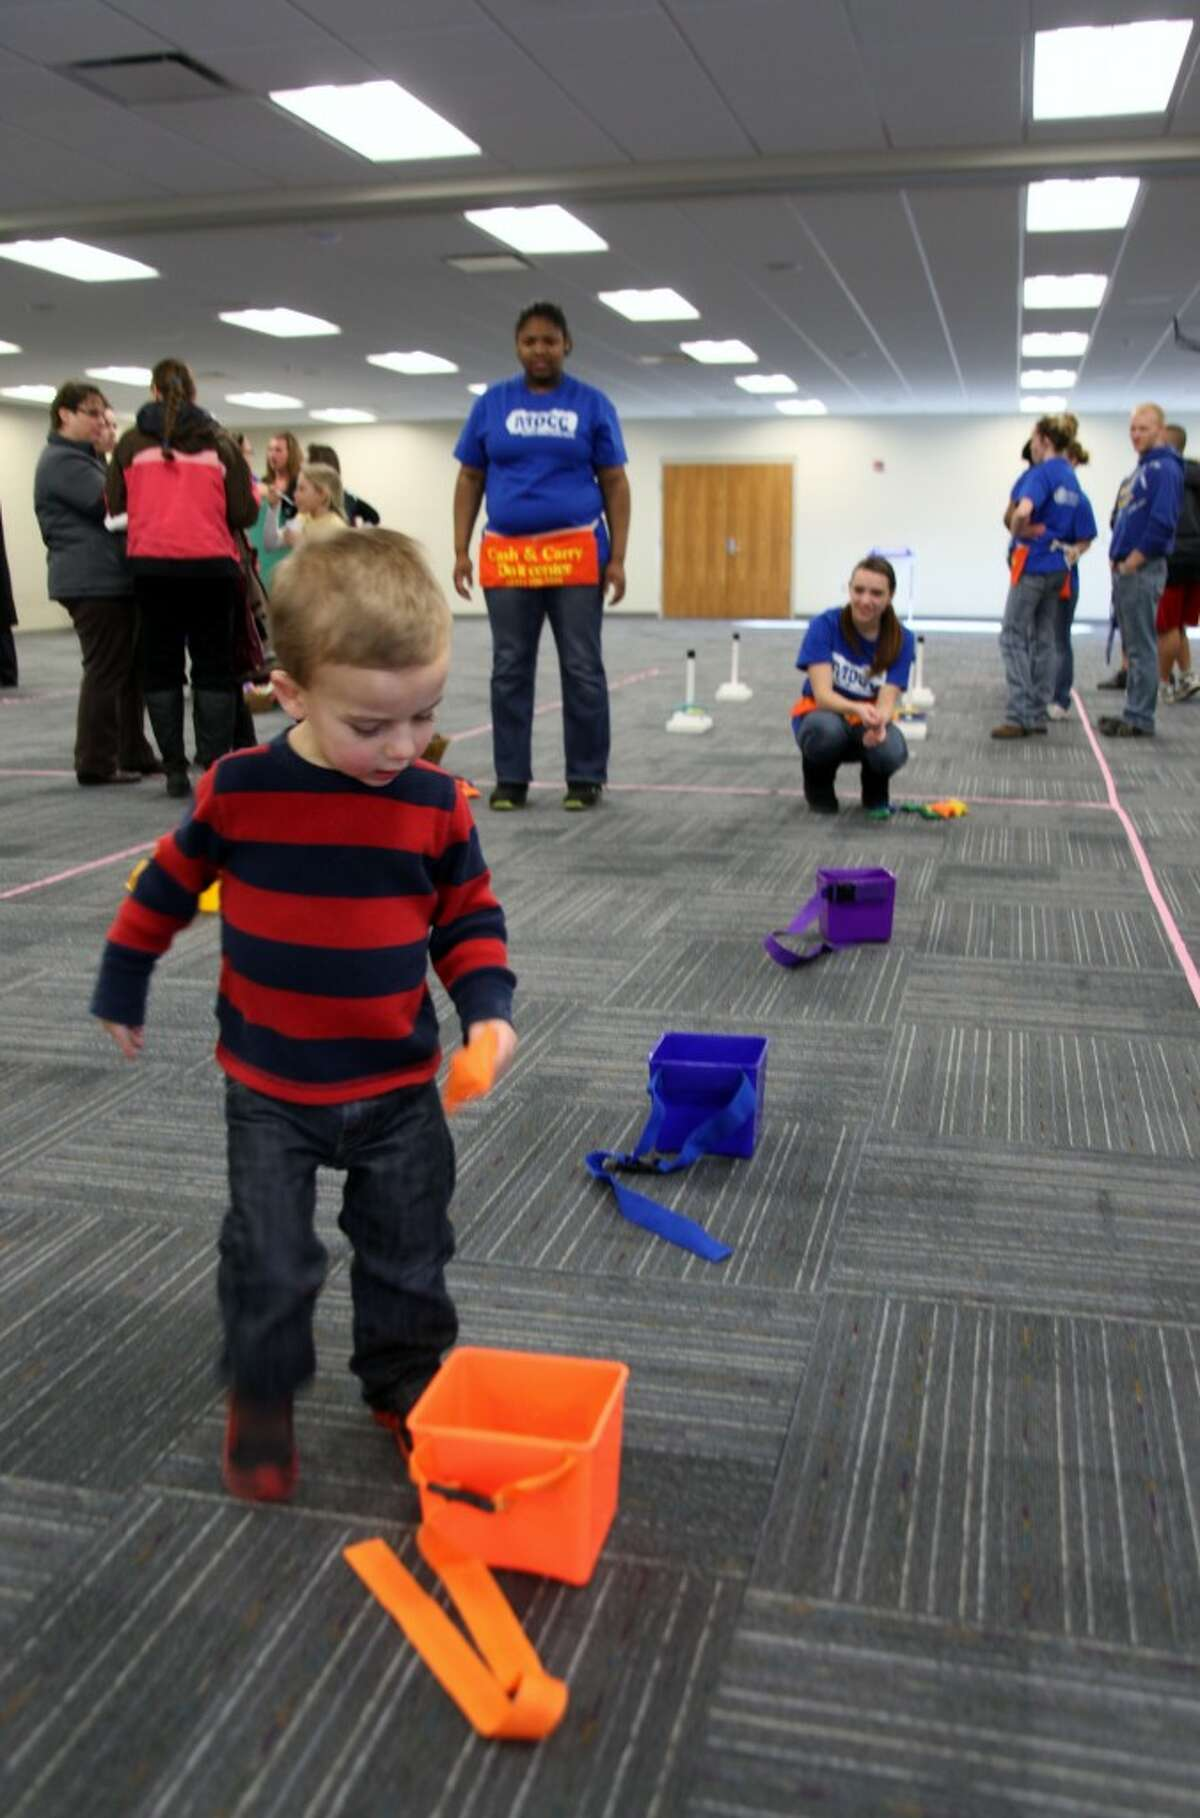 REASON TO CELEBRATE: Levi Snyder, 2, plays a game at the Mecosta-Osceola Intermediate School District 50-year anniversary open house on Thursday. His mother, DeAnn Snyder, is a special education teacher for the MOISD. (Pioneer photos/Lauren Fitch)